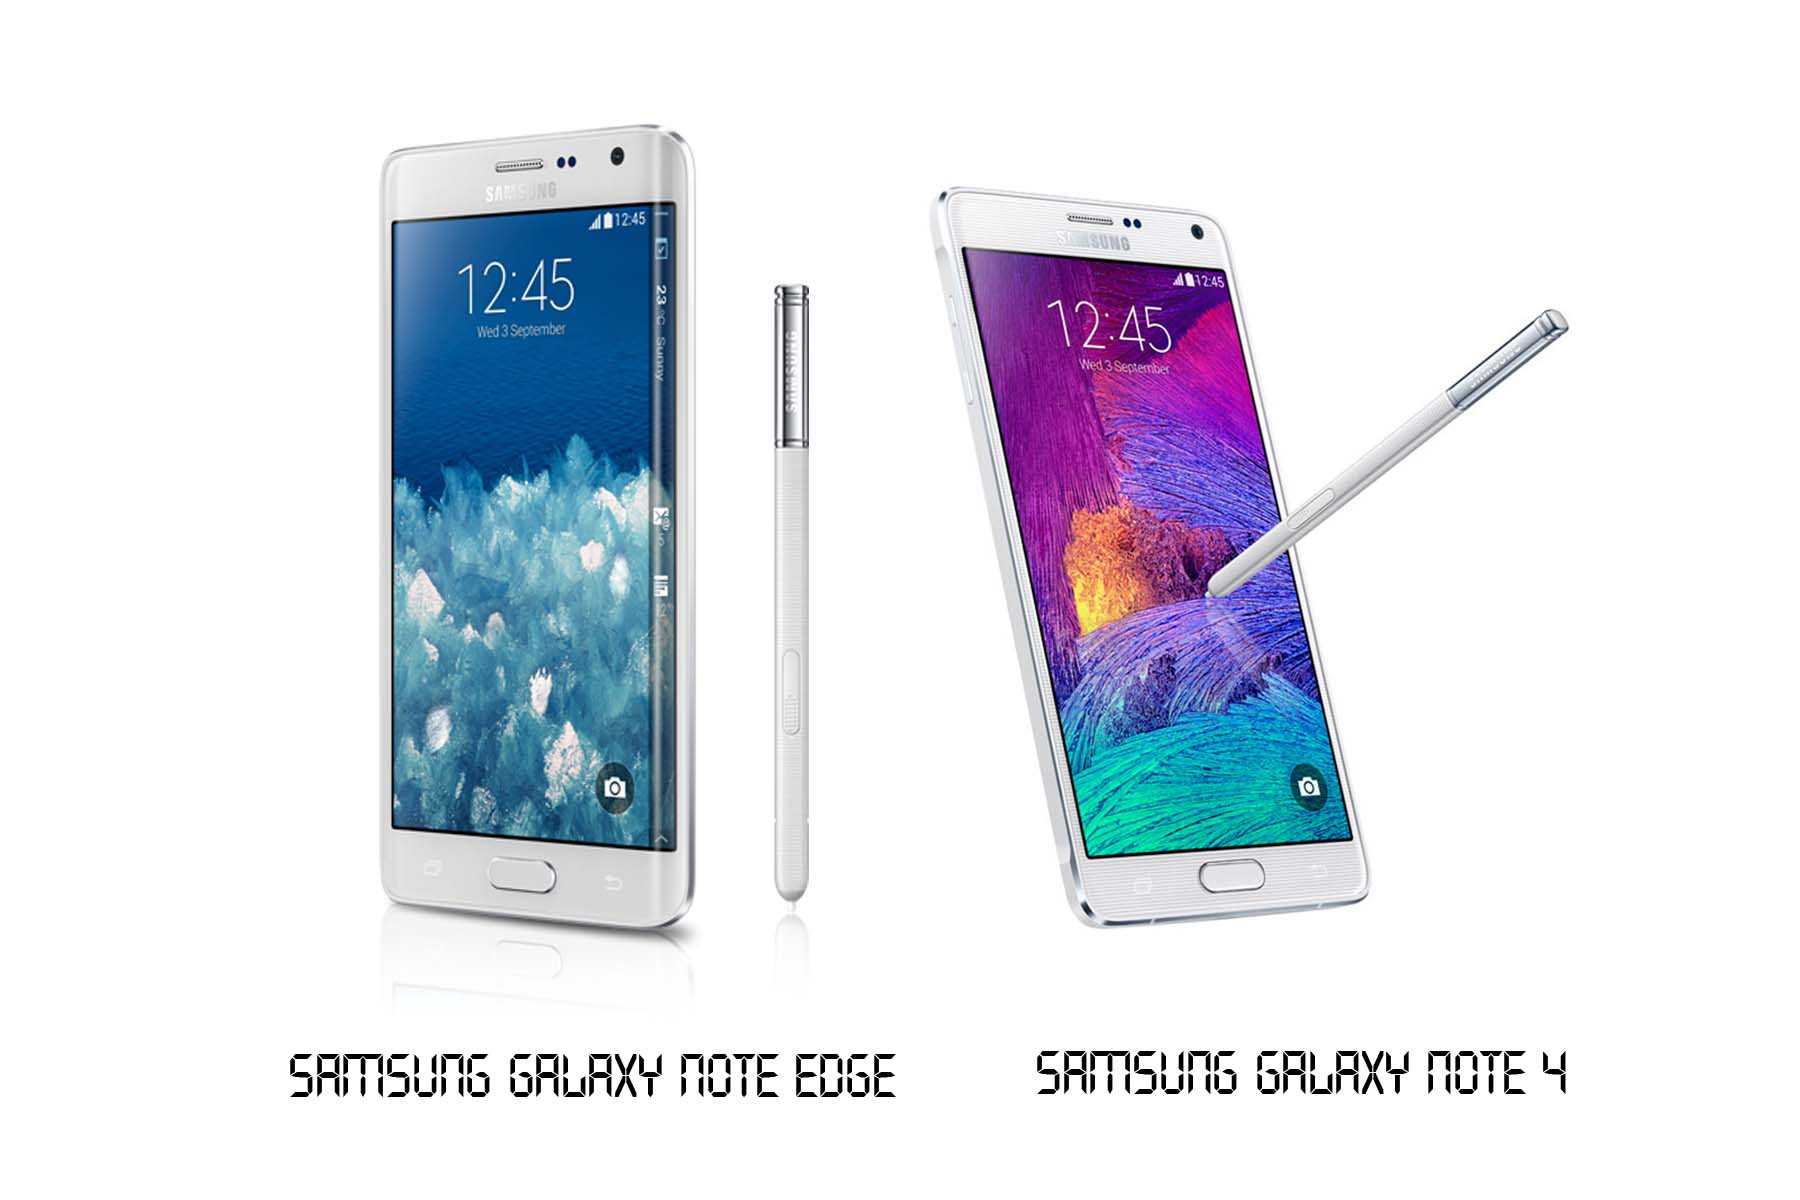 Samsung Galaxy Note Edge Vs Samsung Galaxy Note 4 Features and Prices in Pakistan